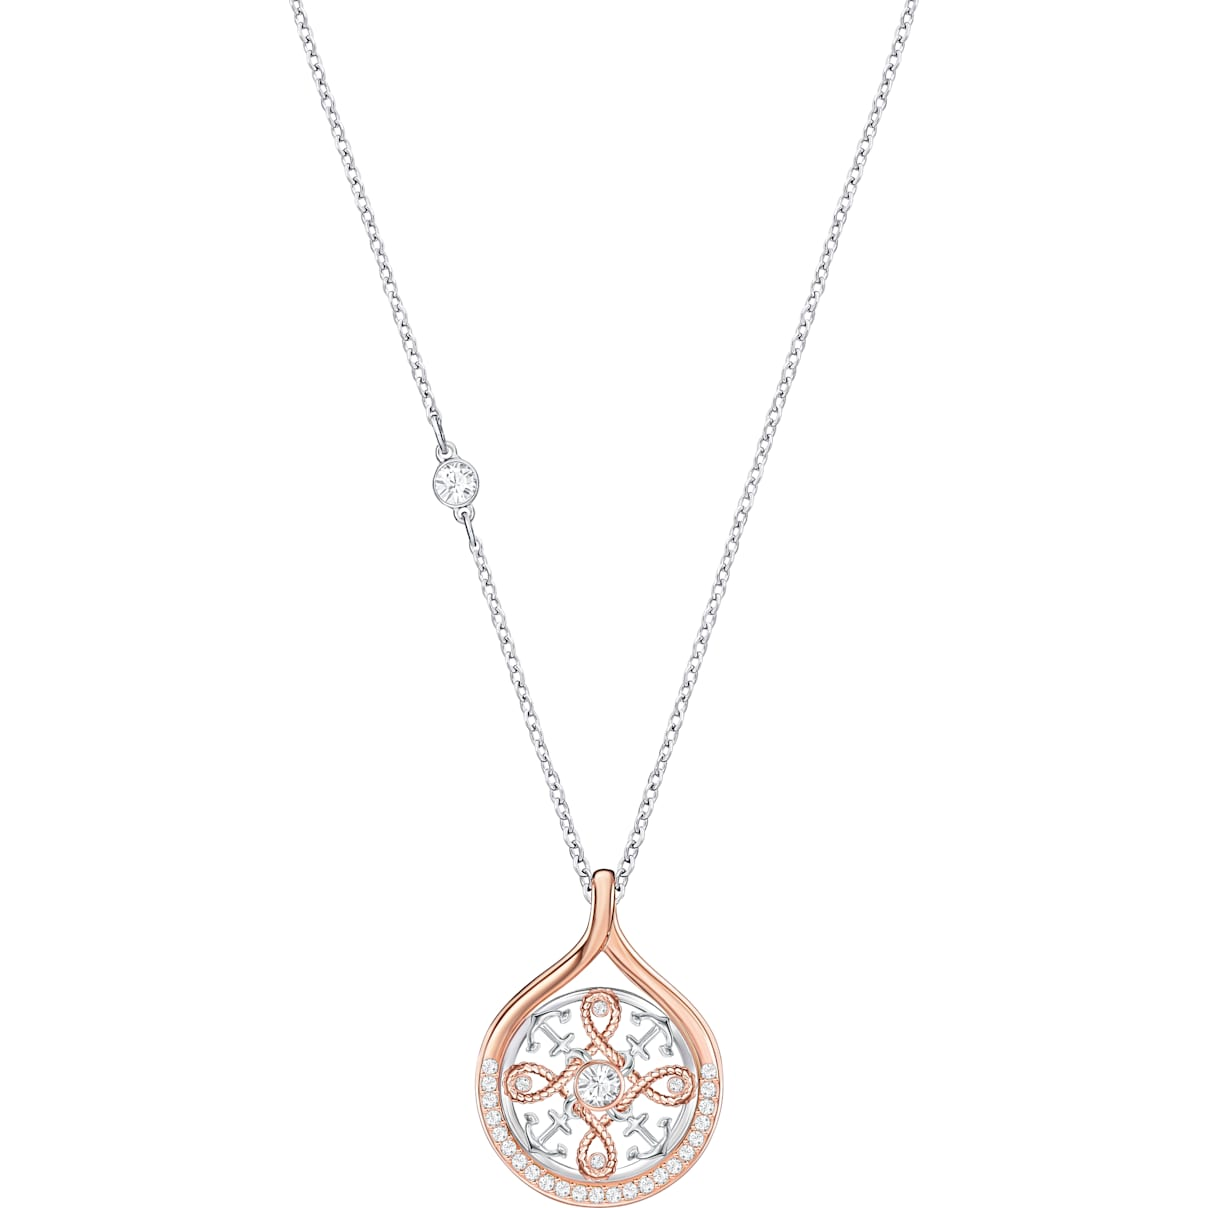 Swarovski Humanist Anchor and Knot Pendant, White, Mixed metal finish